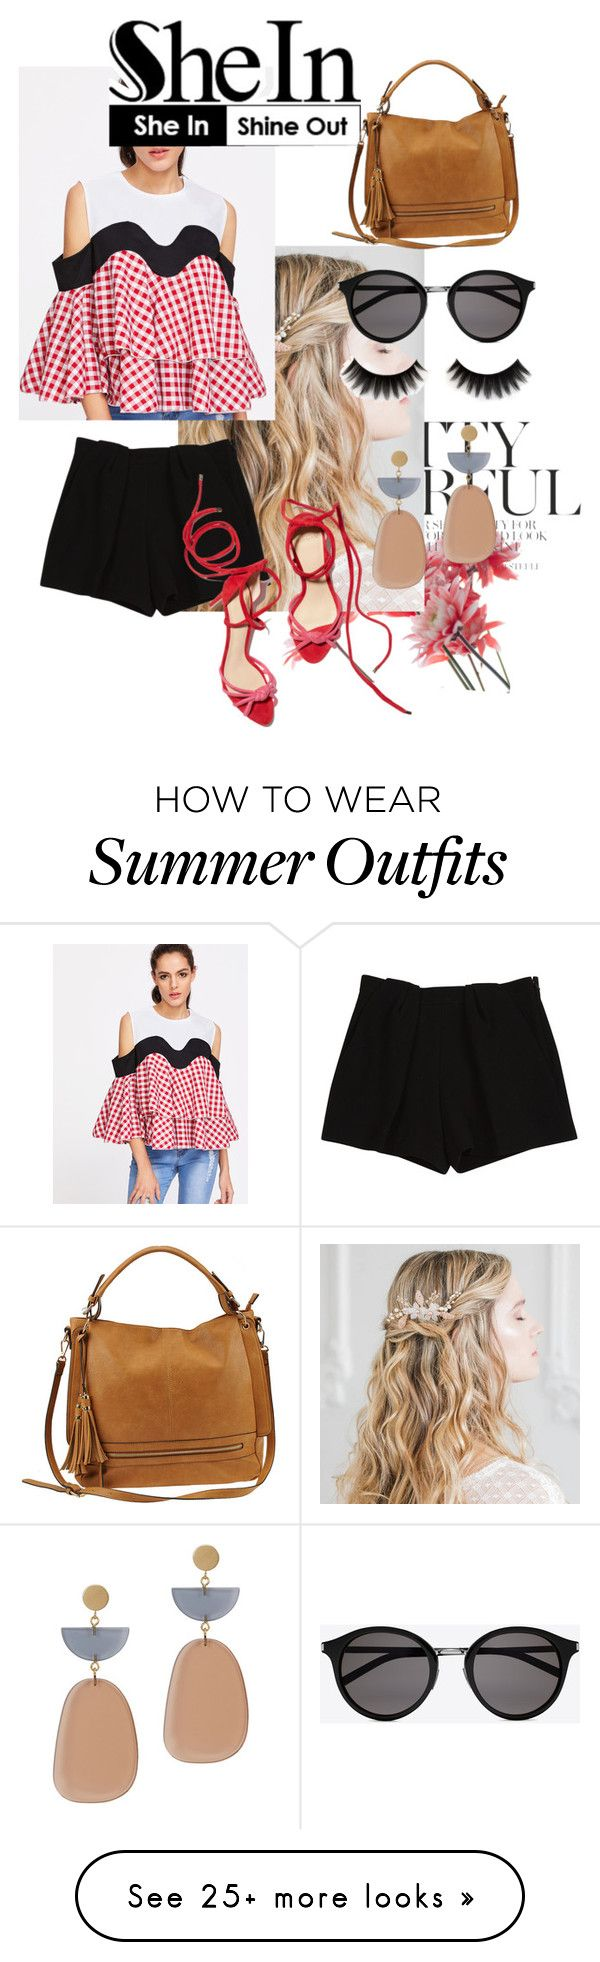 """""""Fresh outfit for styling girl in summer"""" by viantiao on Polyvore feat..."""